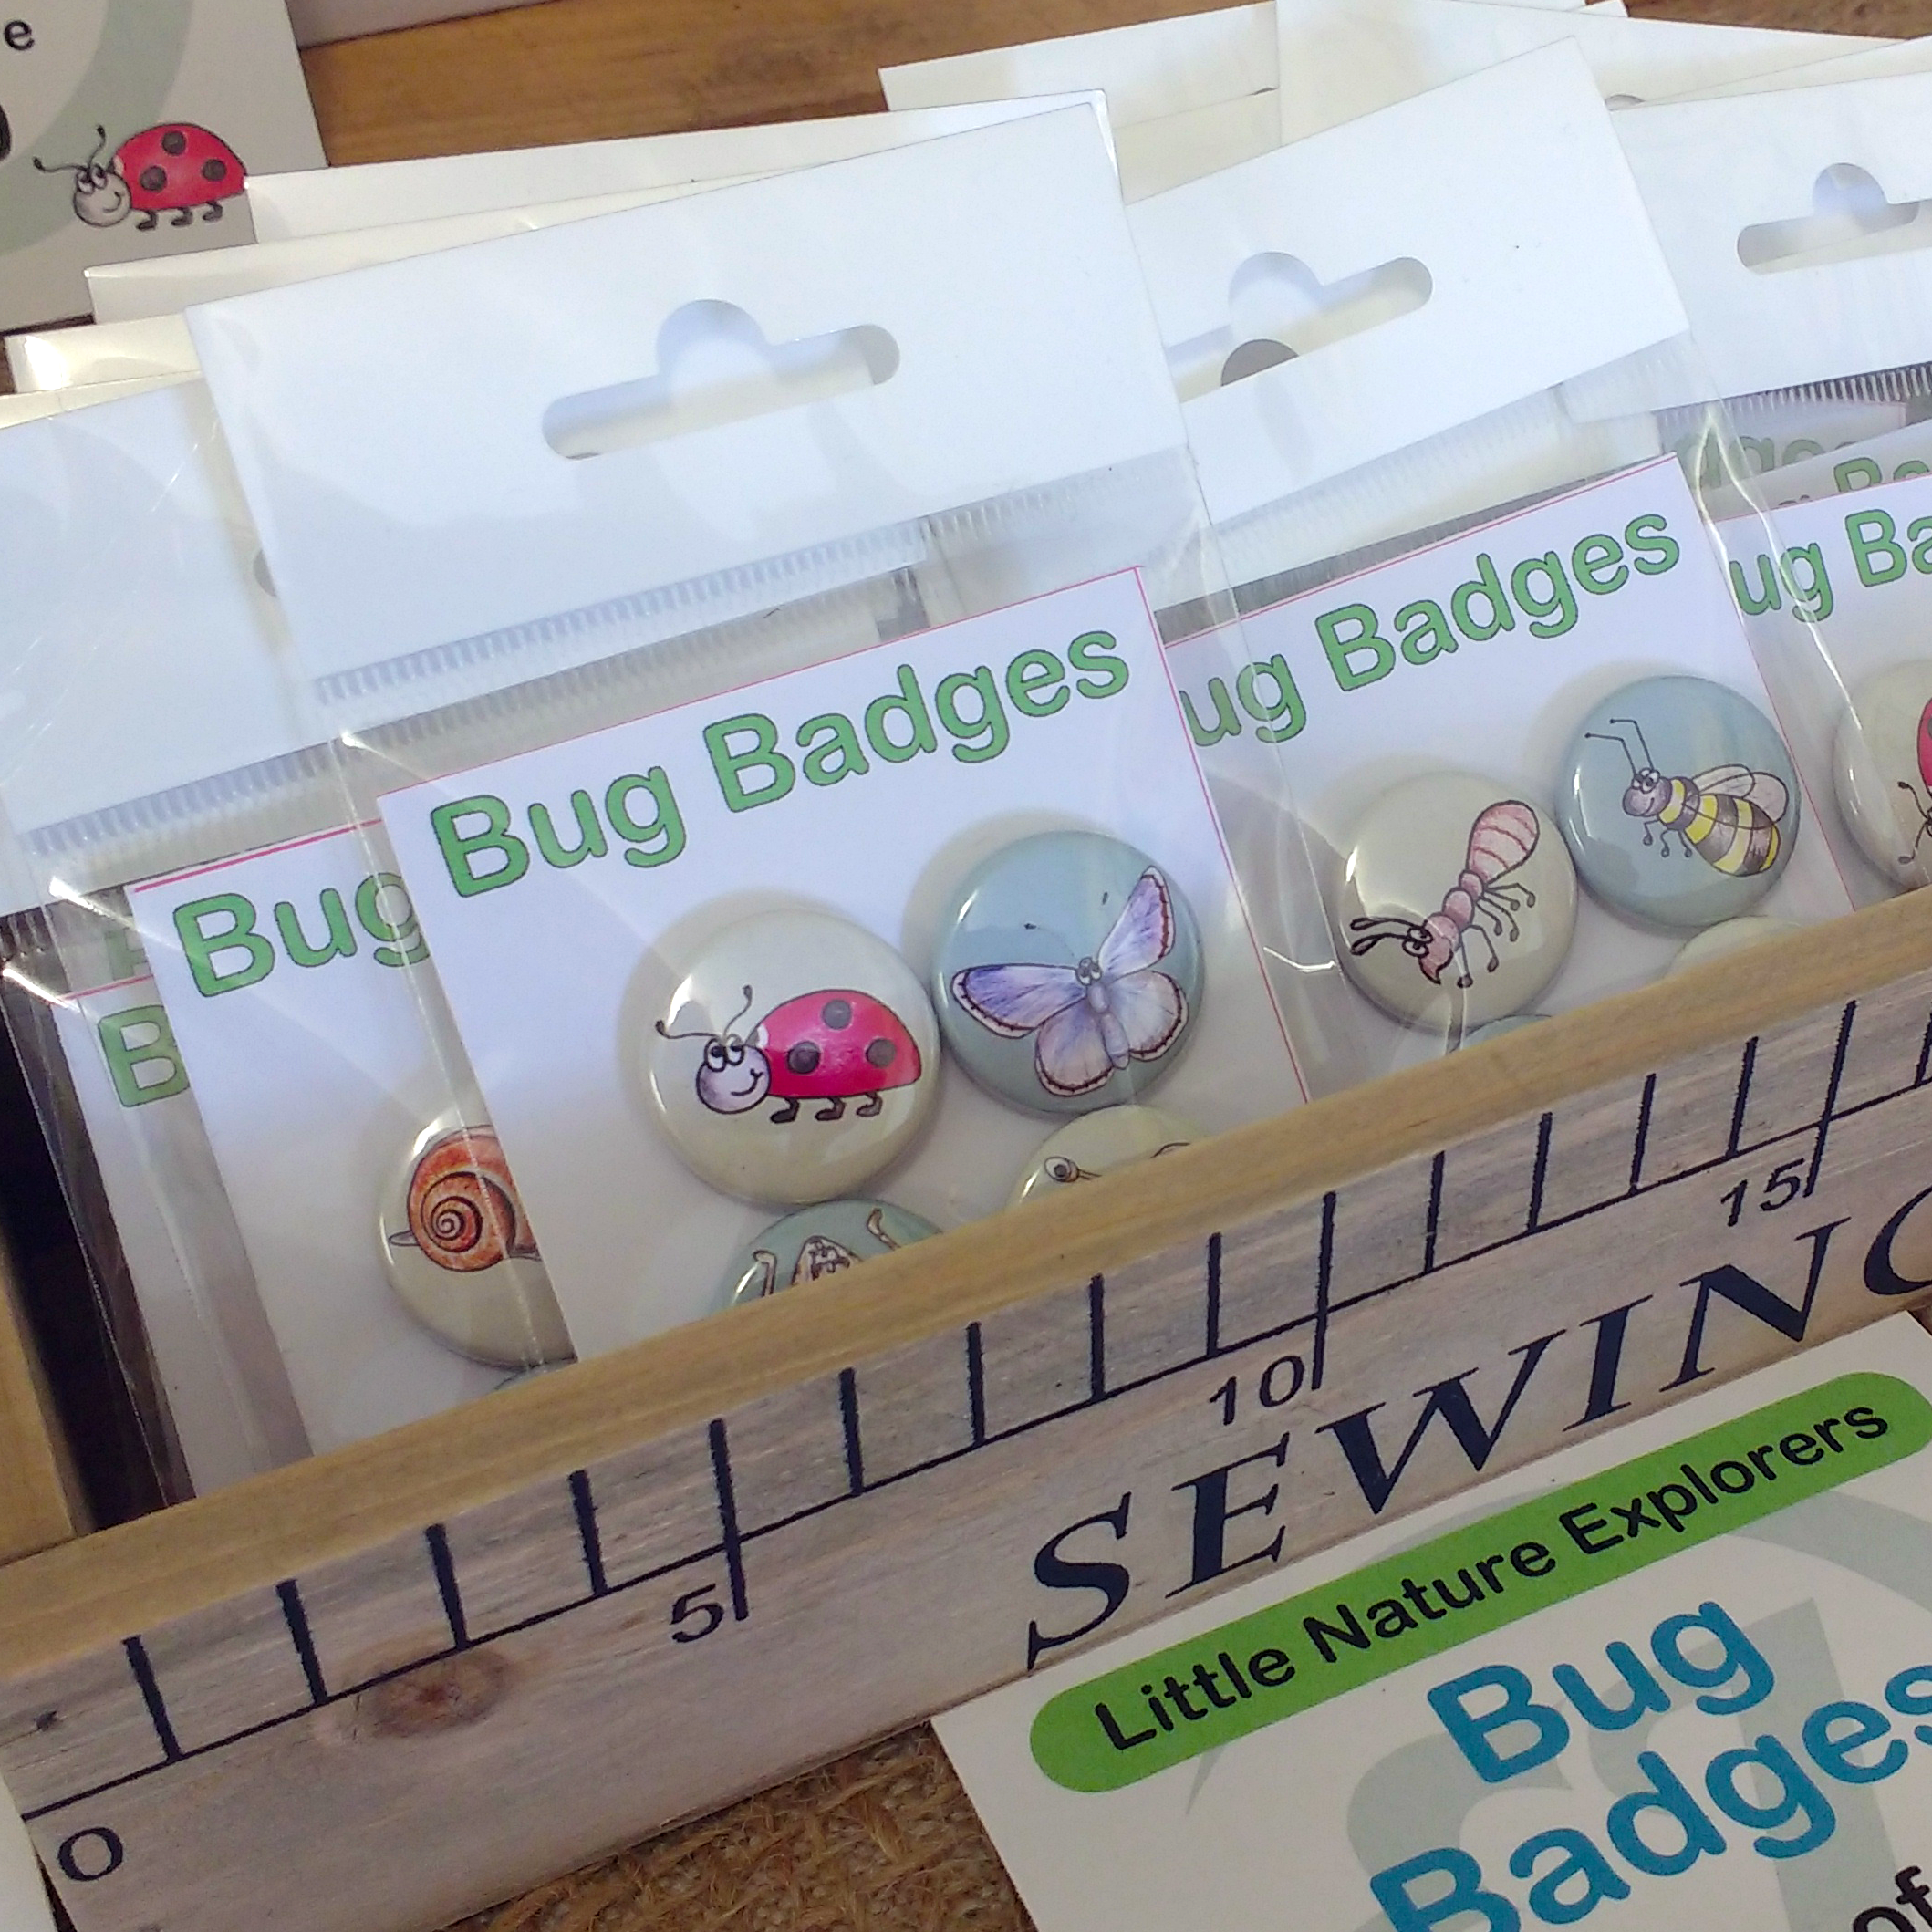 Bug badges